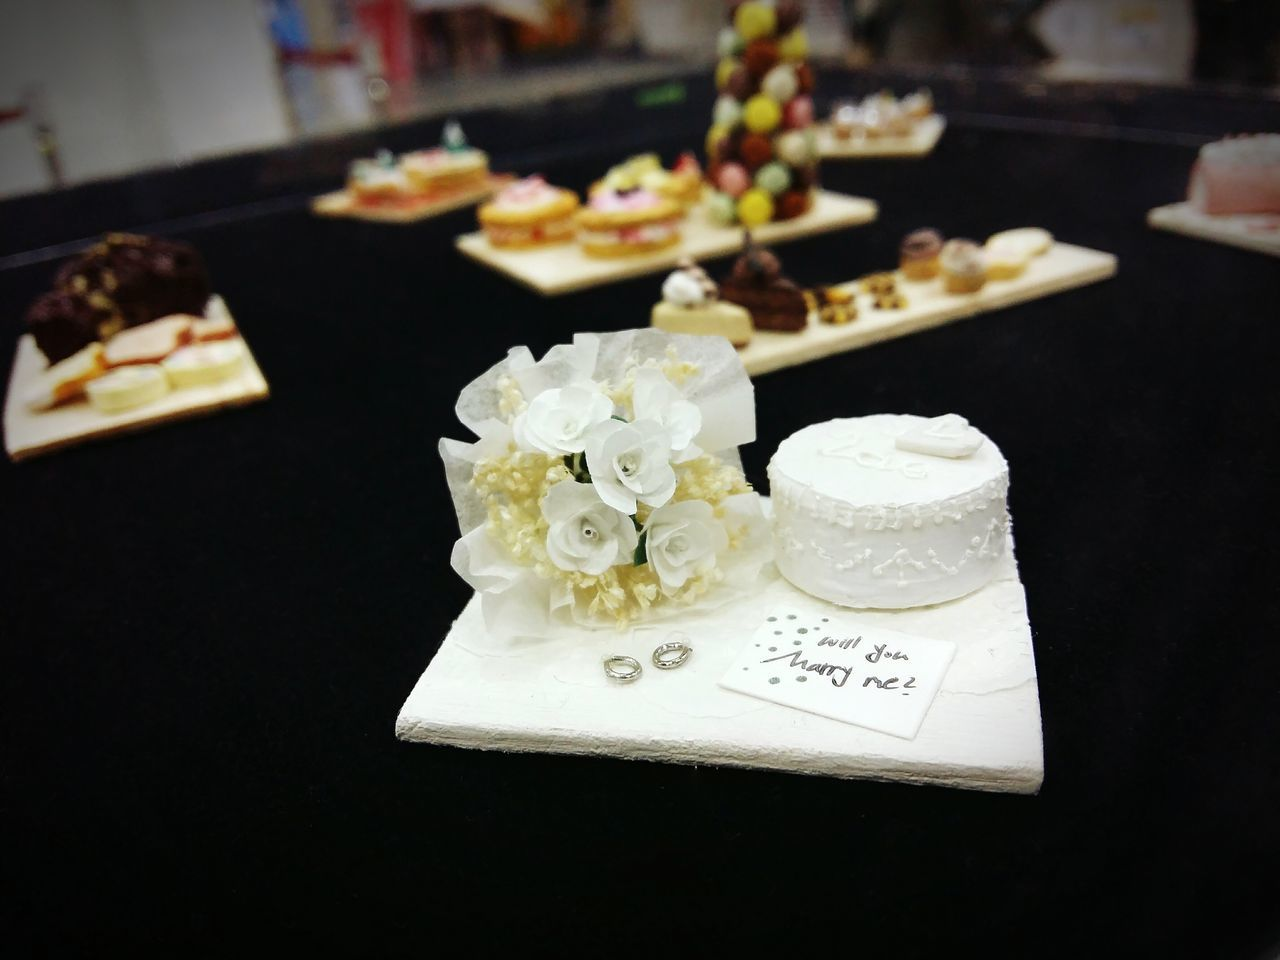 미니어처 미니어쳐 케익 스위트코리아 Miniature Cake Will You Marry Me? Cute Small Things Small_world White Sweet Korea KINTEX Gallery